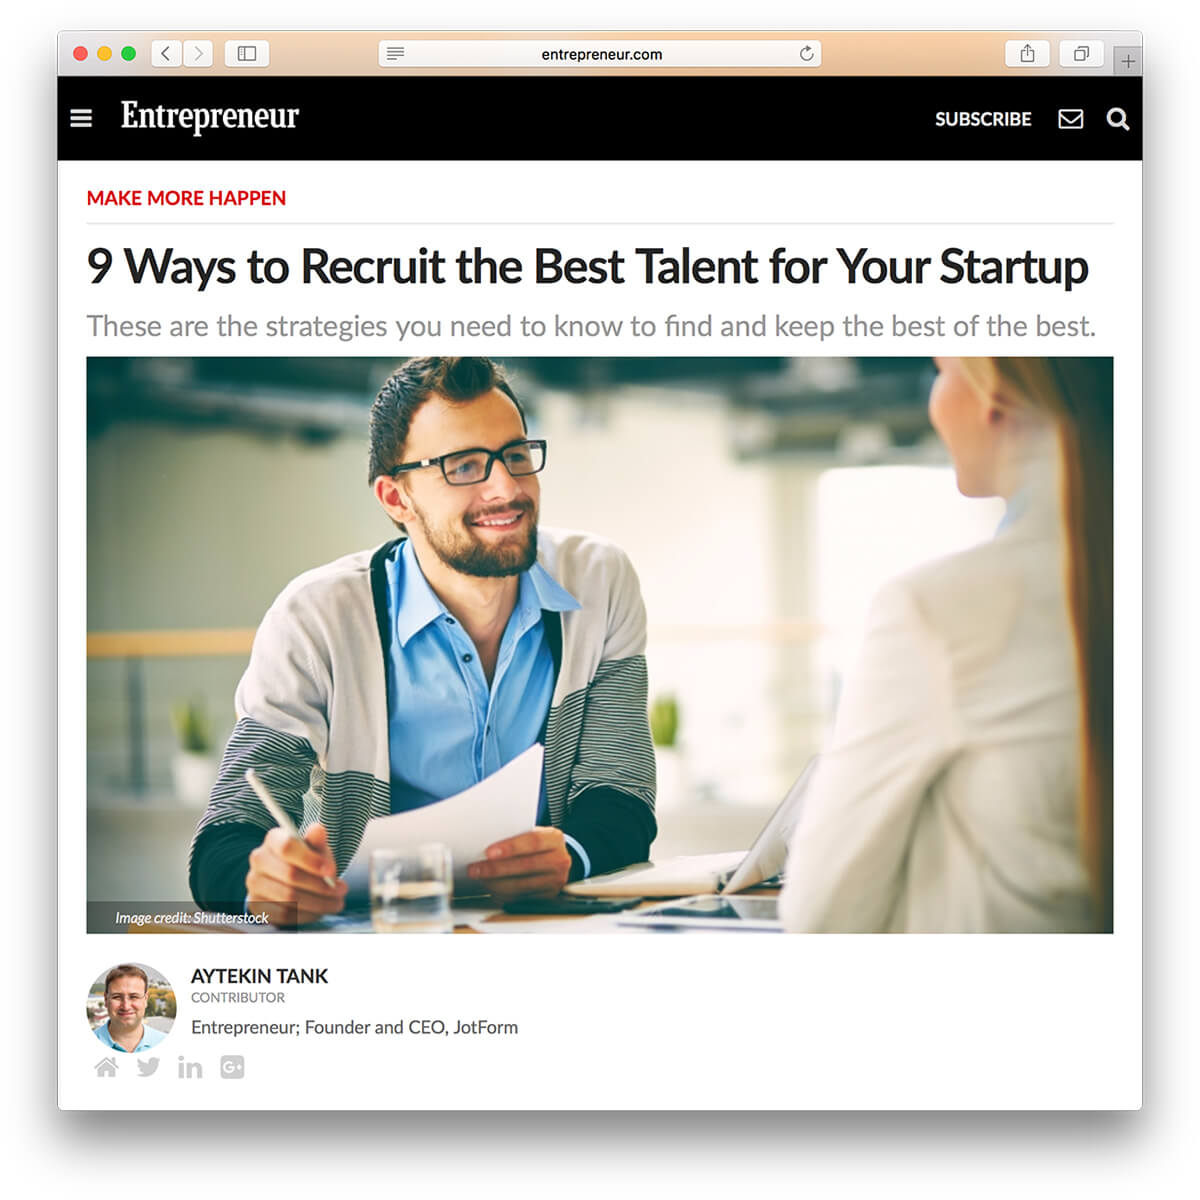 March Newsletter - 9 Ways to Recruit the Best Talent for Your Startup